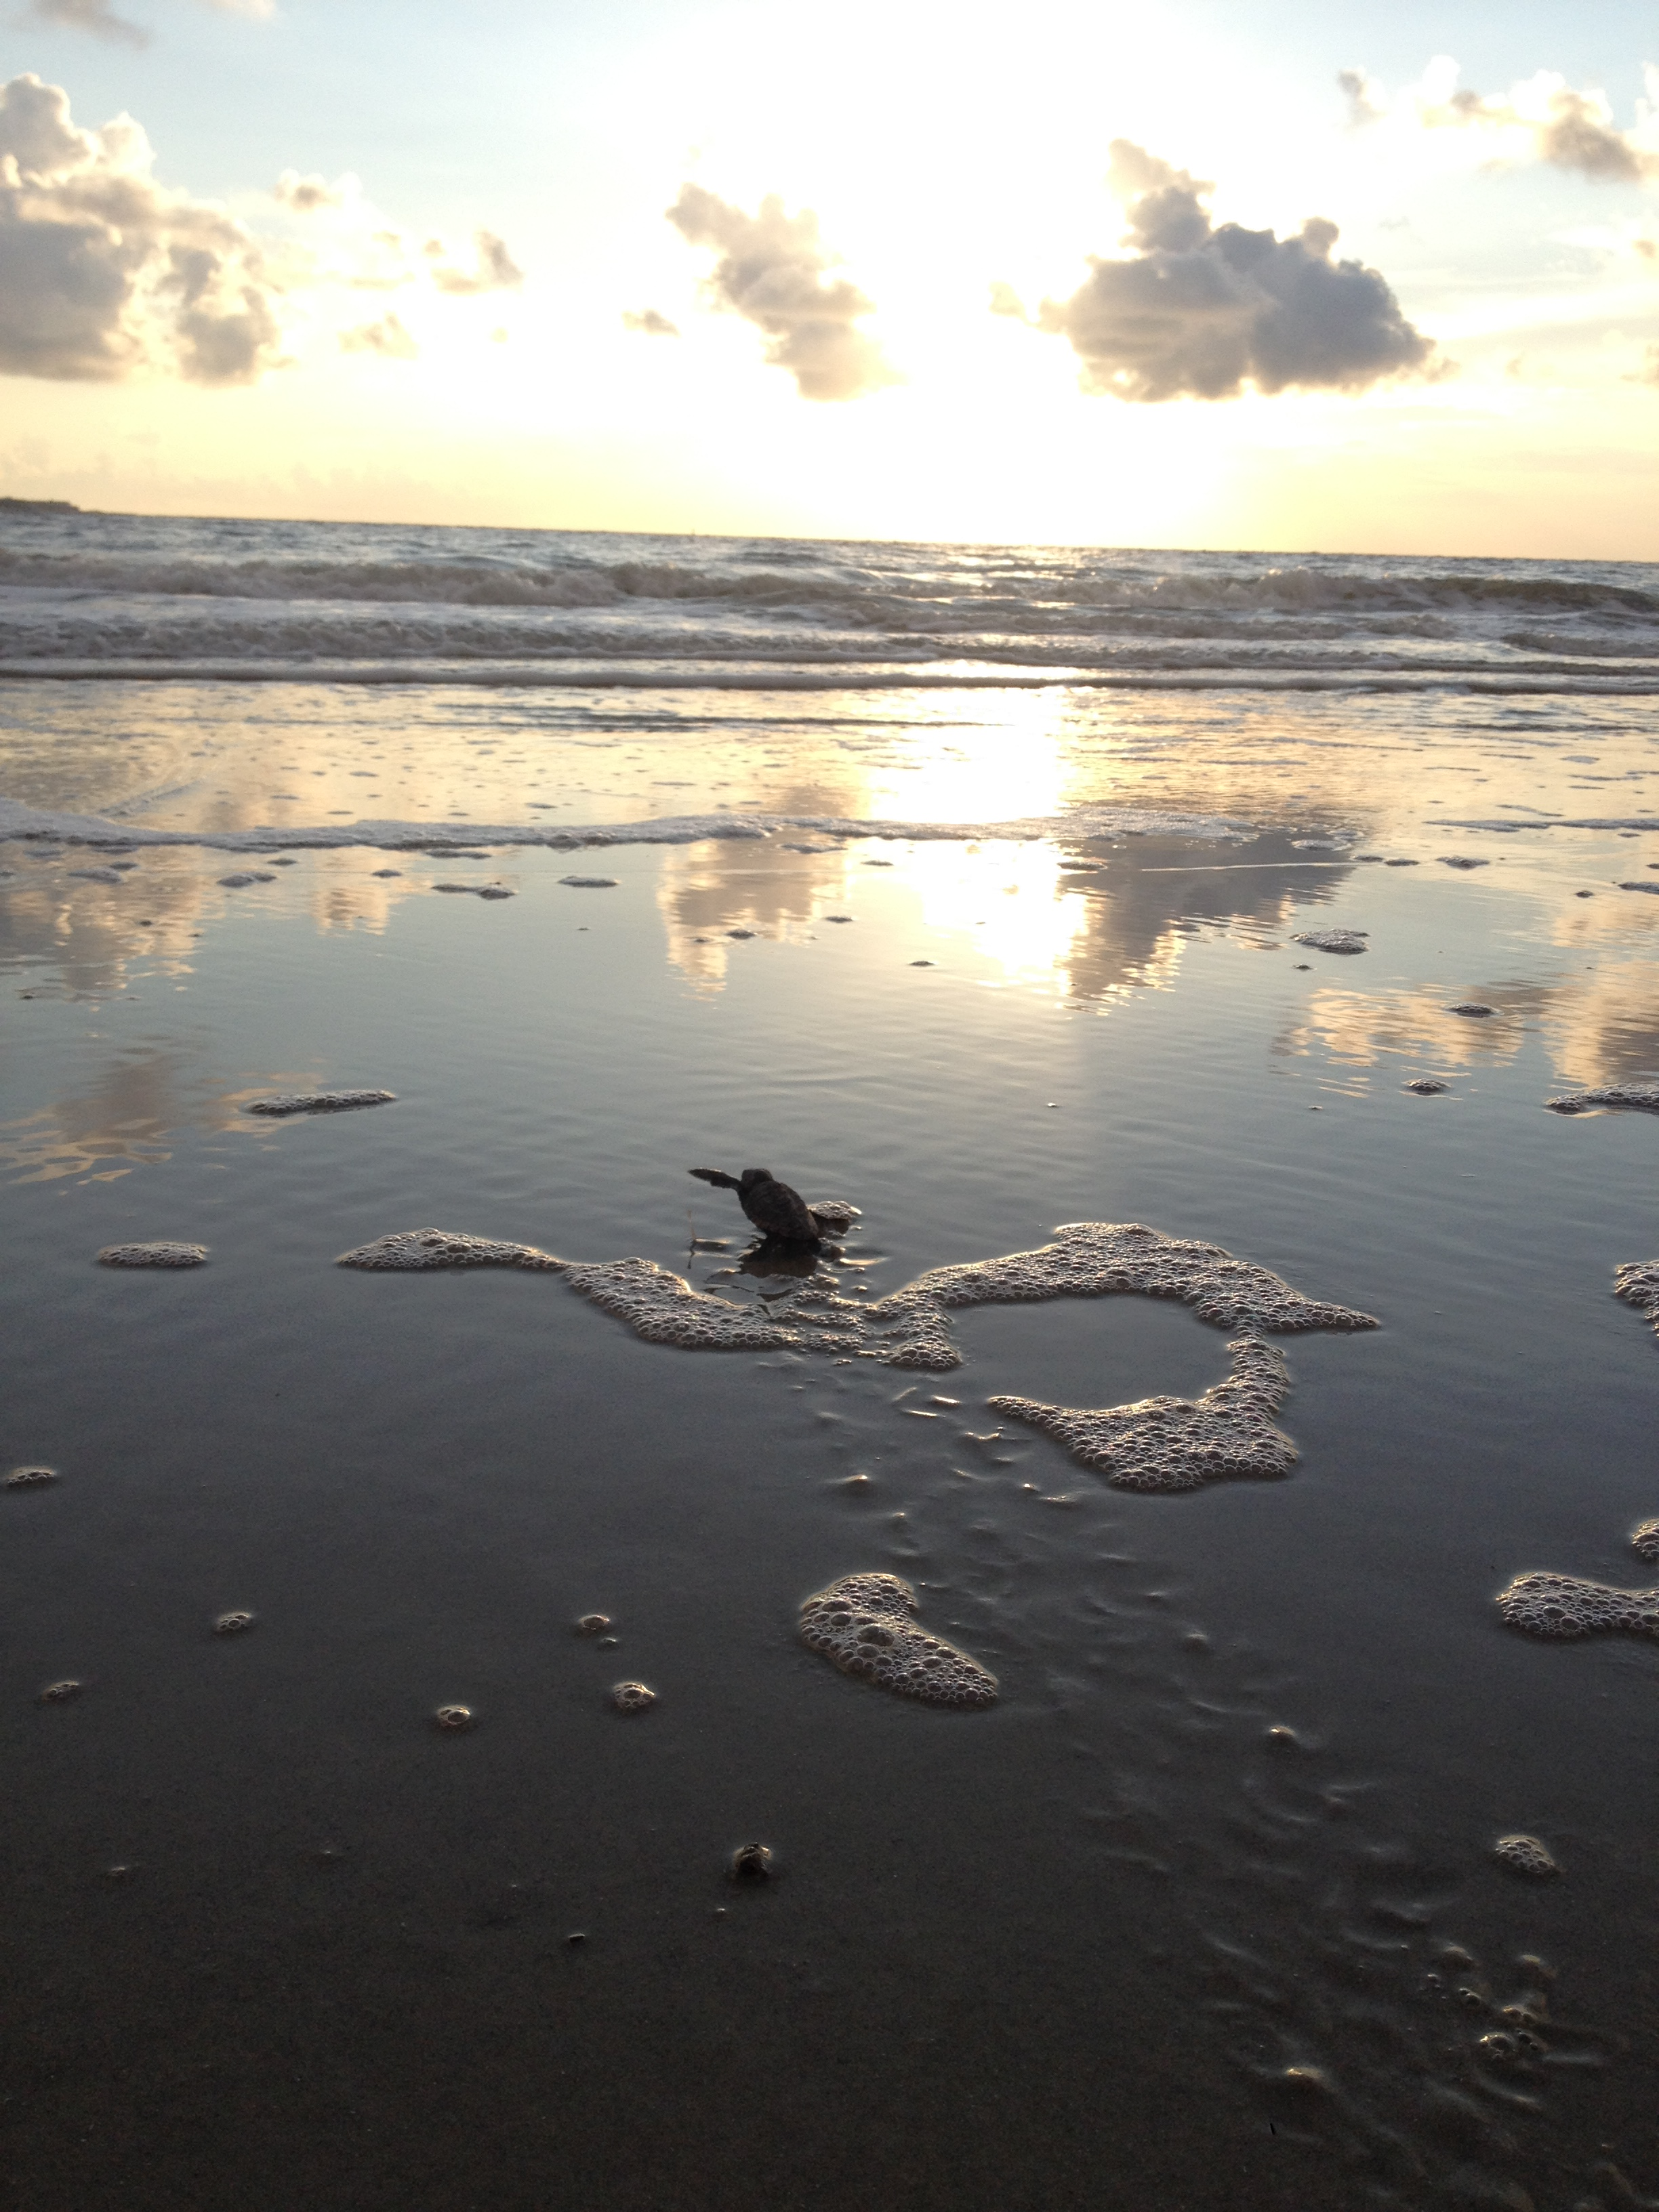 A sea turtle hatchling making its way to the open ocean.